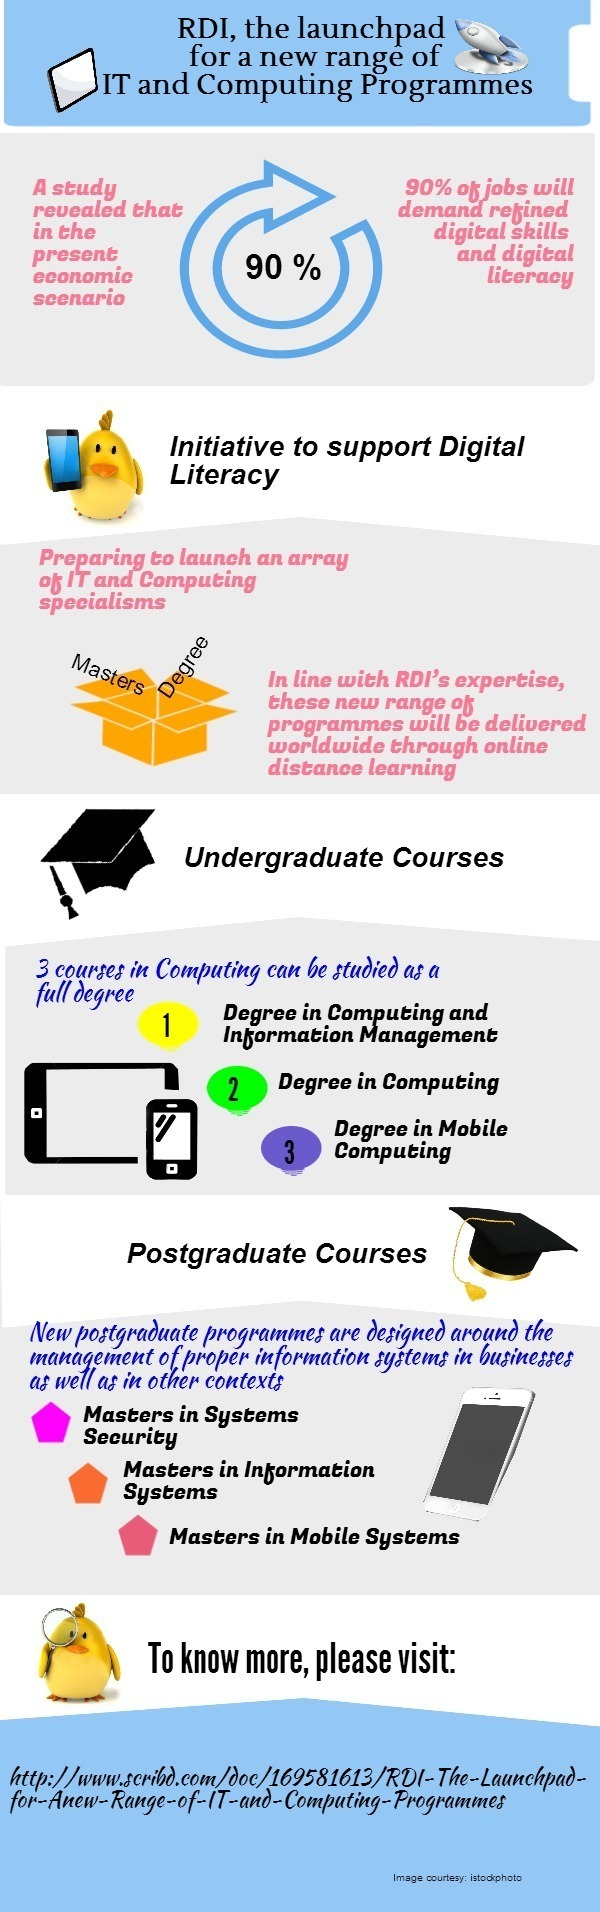 Infographics-on-RDI-the-launchpad-for-anew-range-of-IT-and-Computing-Programmes